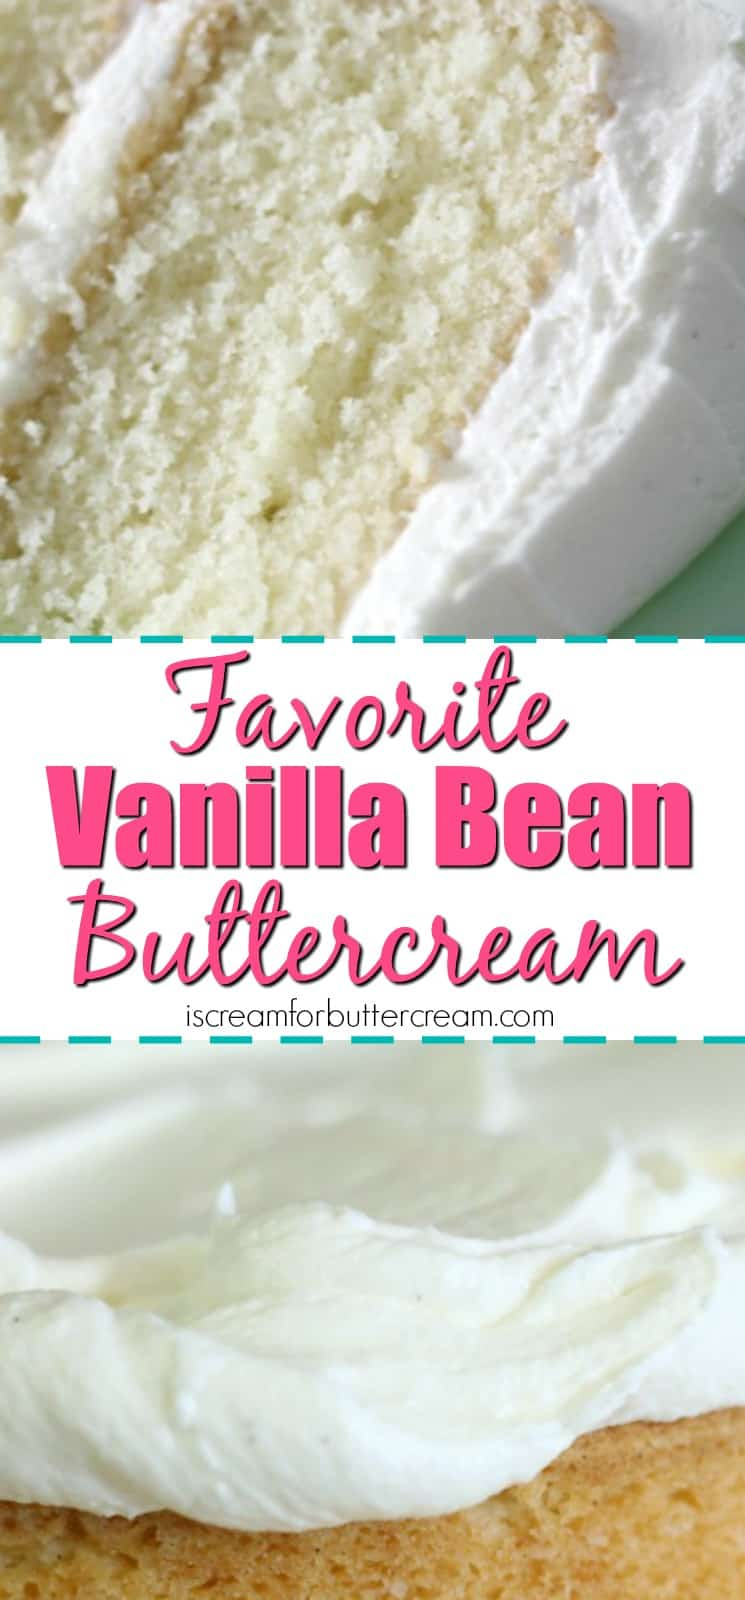 Vanilla Bean Buttercream - I Scream for Buttercream